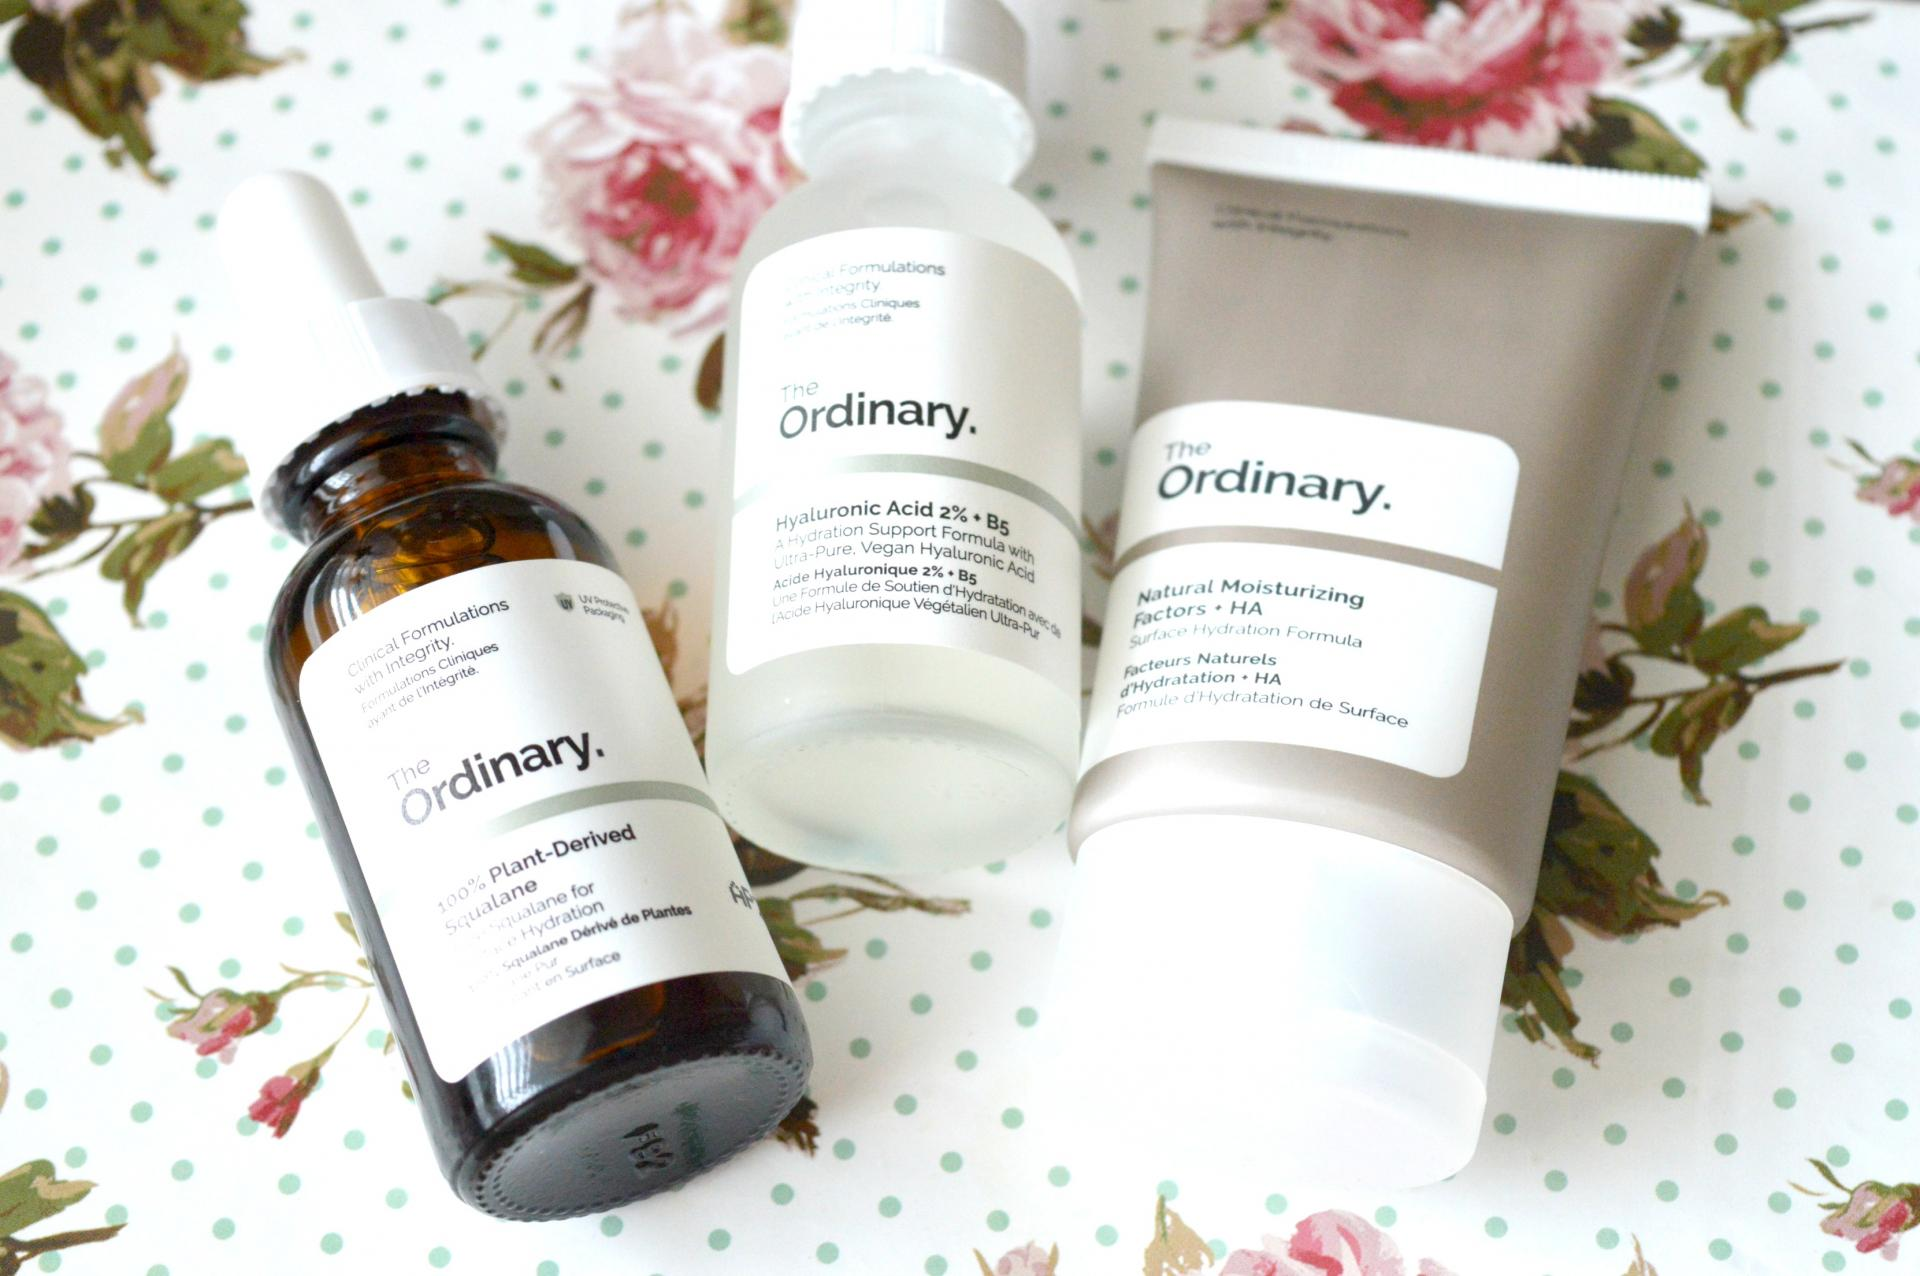 Is The Ordinary Skincare Range Really That Good? The Ordinary Hyaluronic Acid 2% + B5, The Ordinary 100% Plant-Derived Squalane and The Ordinary Natural Moisturising Factors + HA